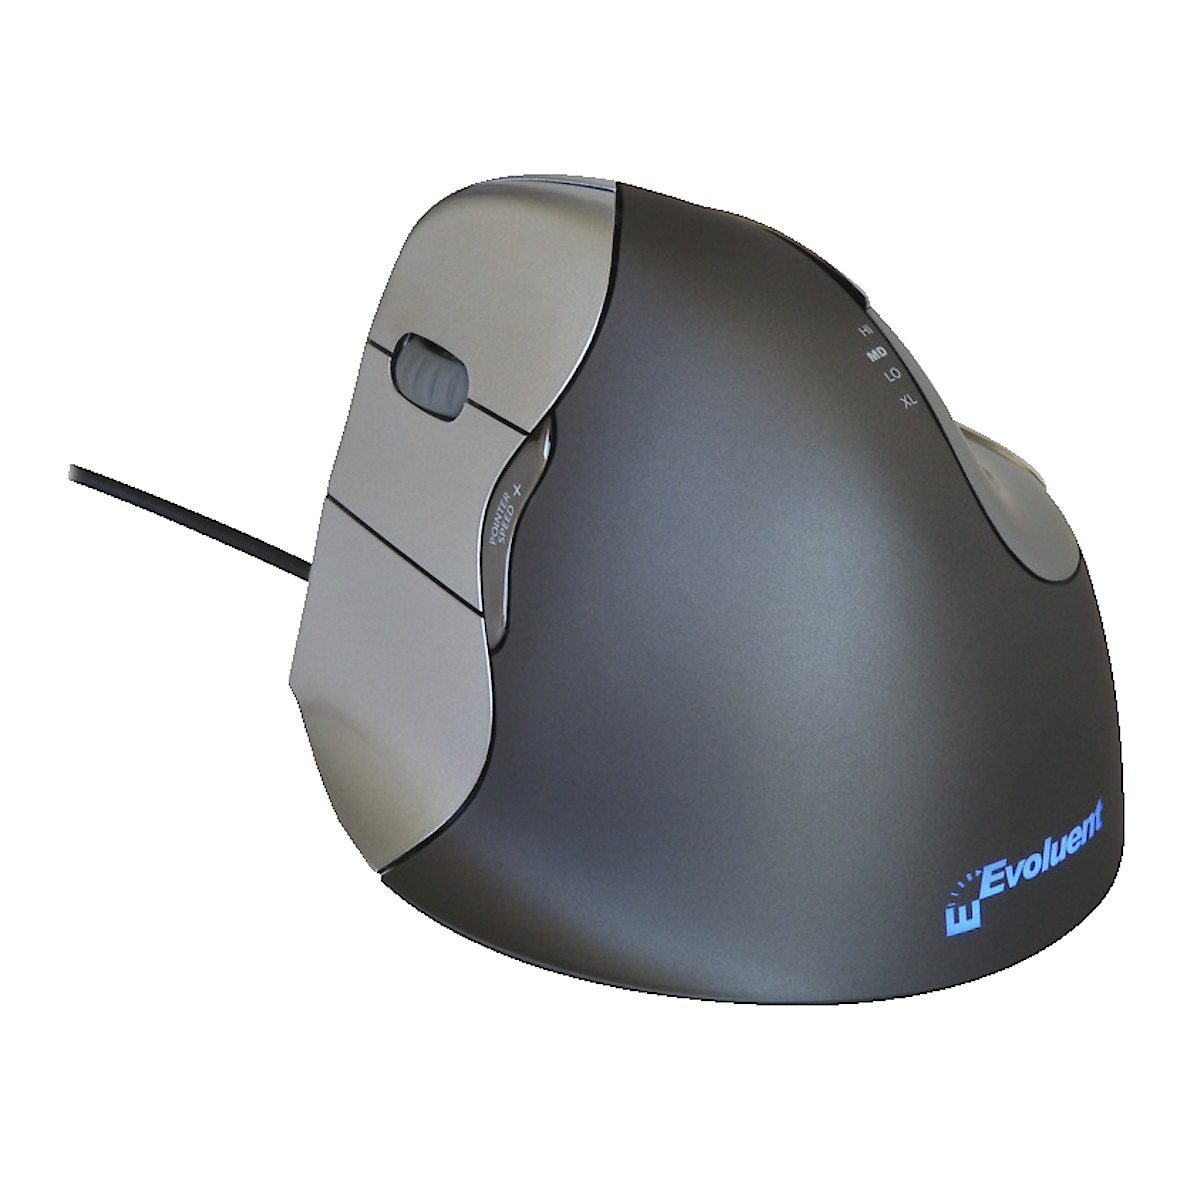 Lasermus Evoluent Vertical Mouse